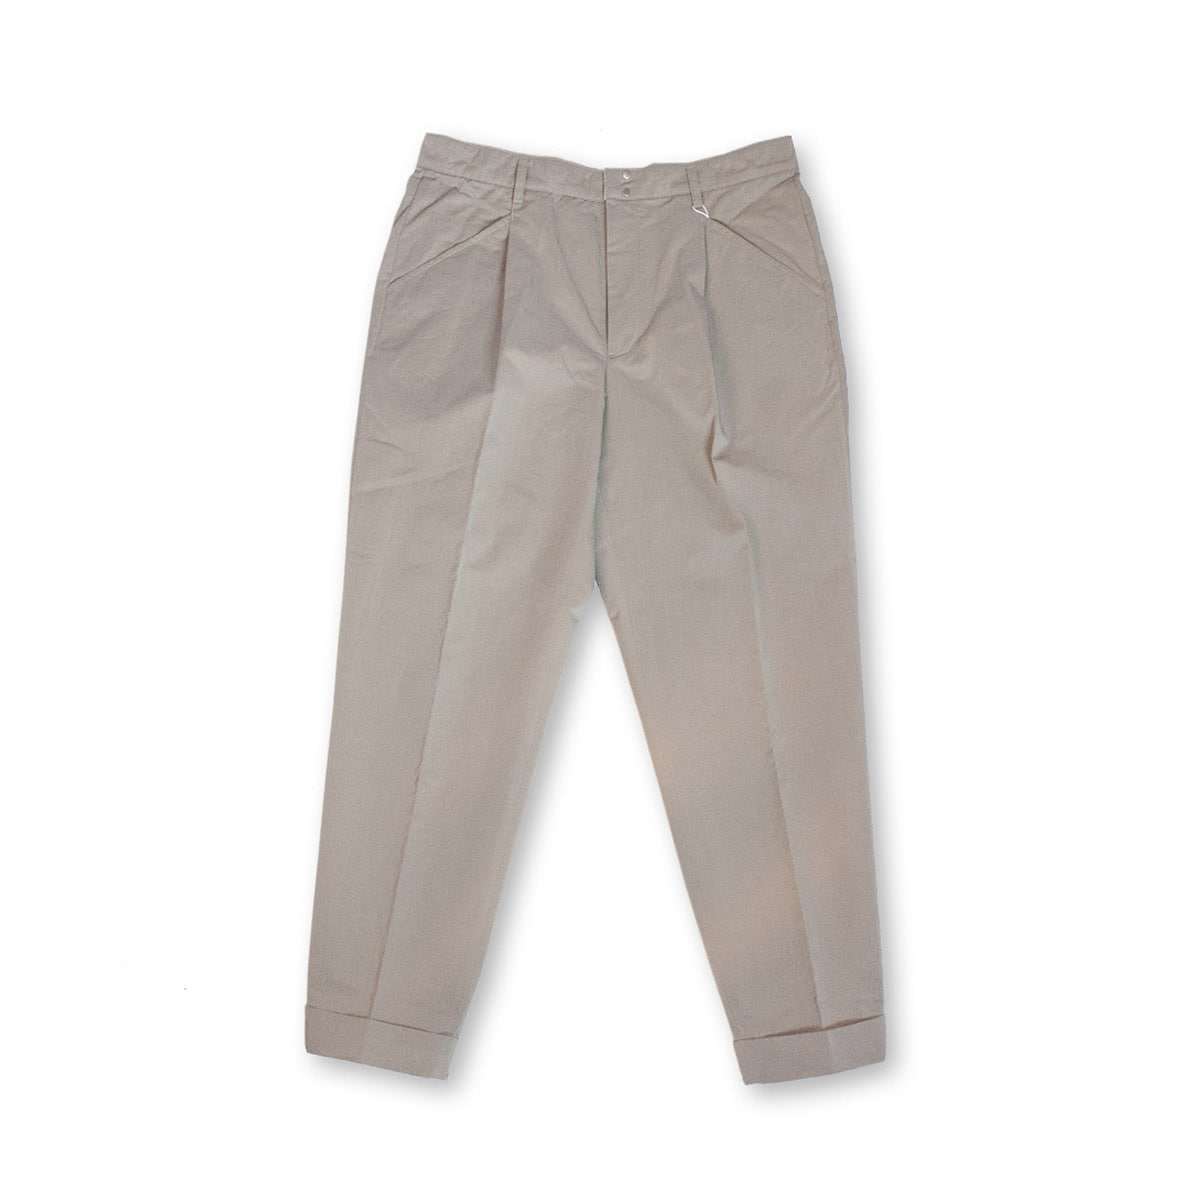 [BEHEAVYER] TUCK PANTS 'GREY'